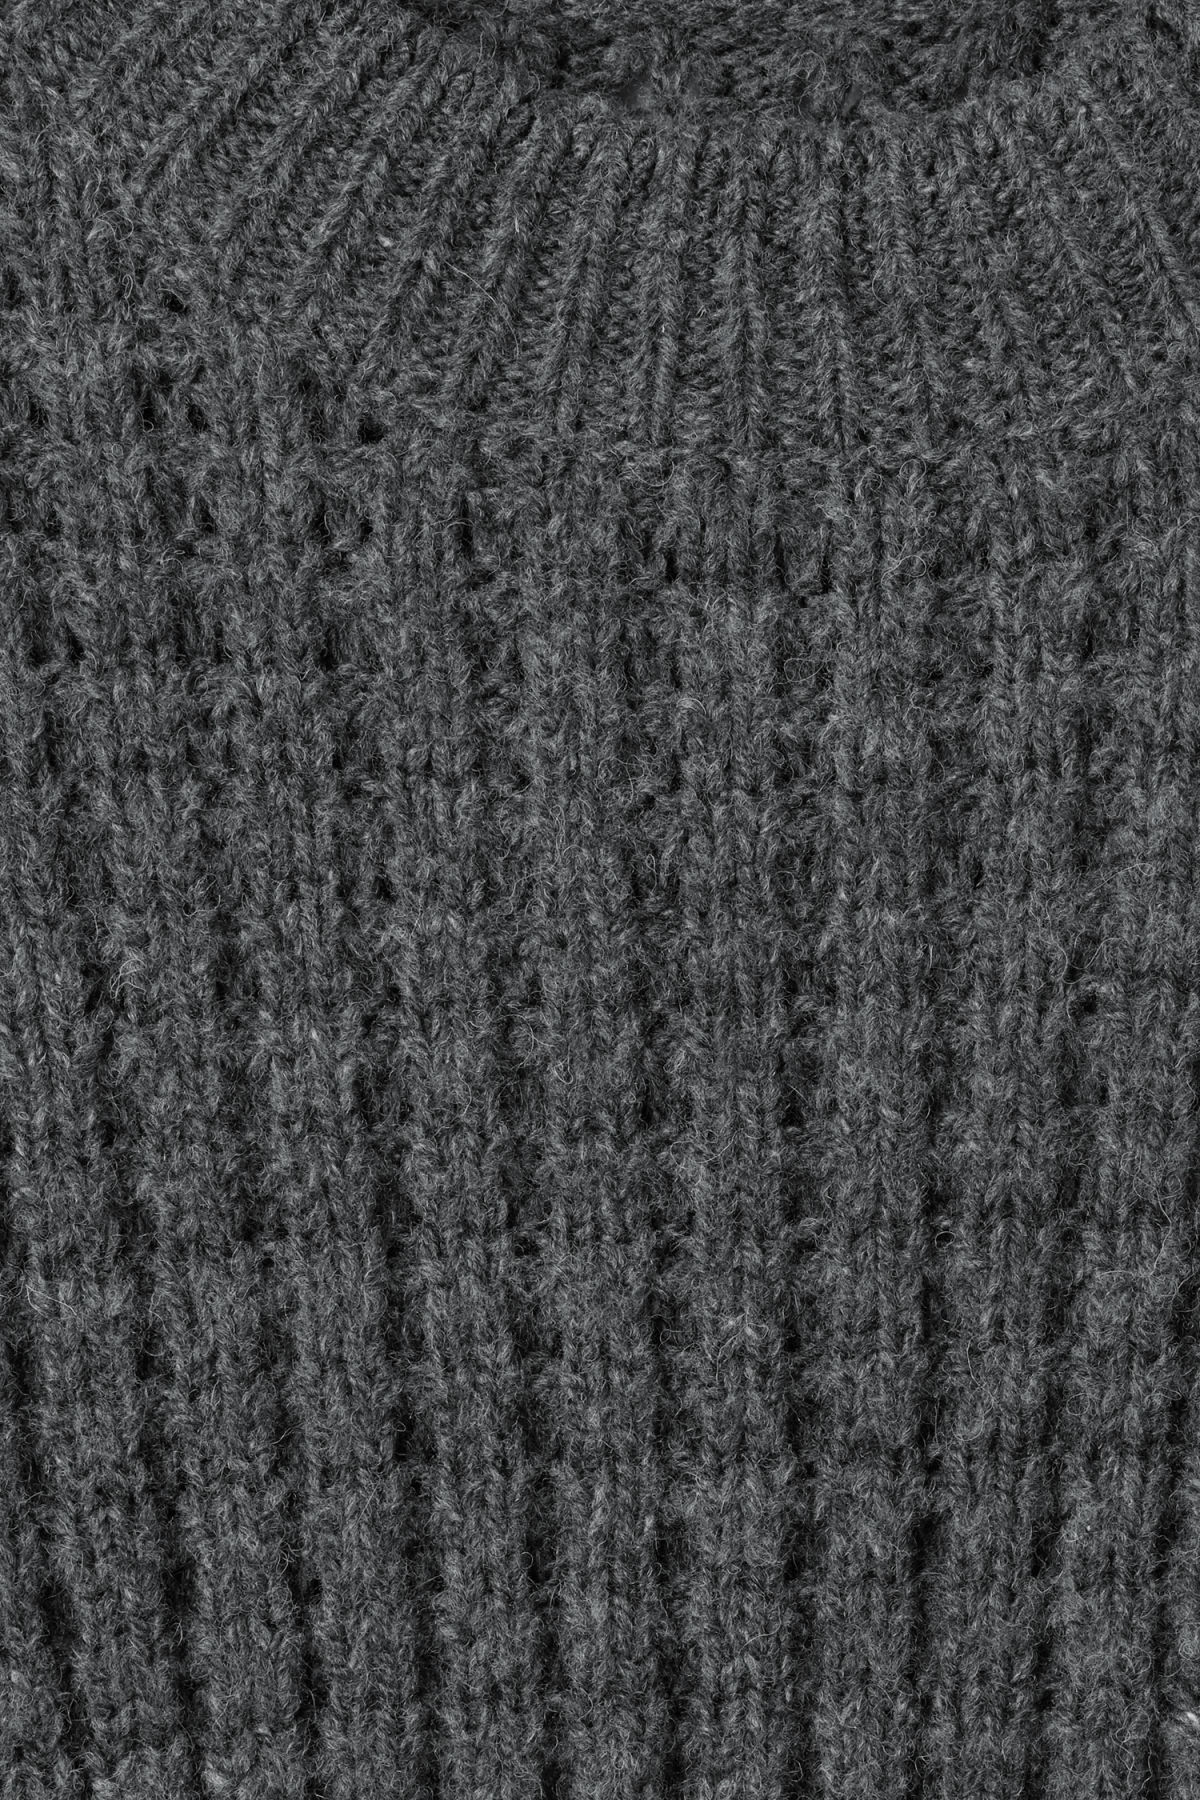 Detailed image of Weekday pine sweater in grey